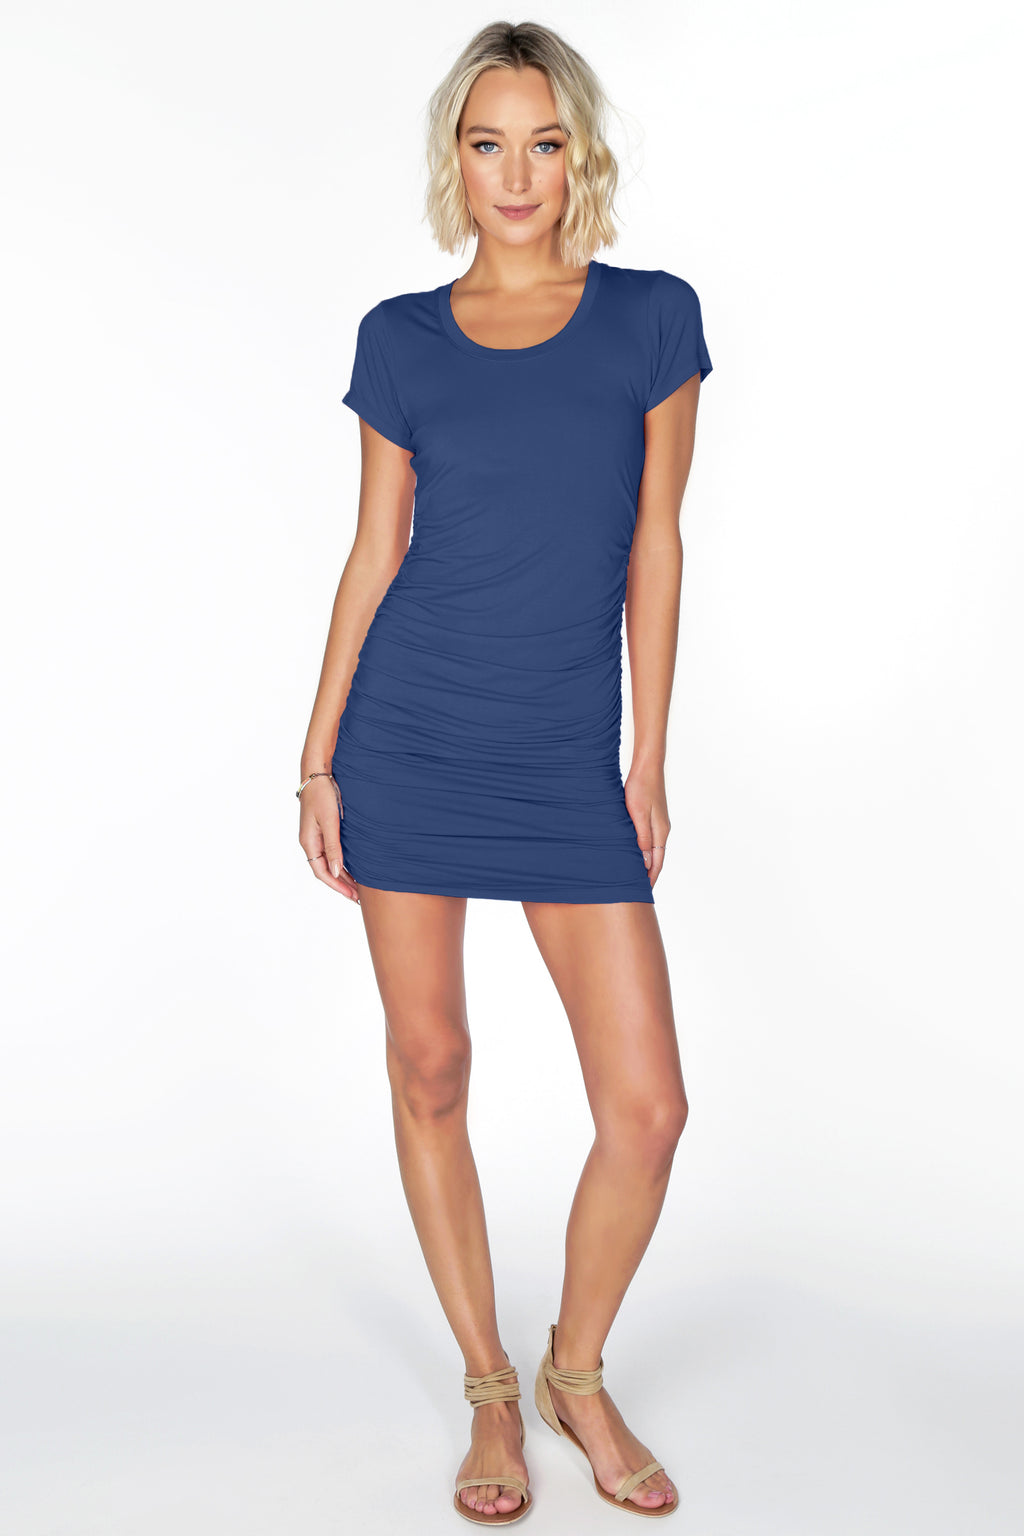 Short Sleeve Shirred Dress WAS 80 NOW 72 in Black or Navy